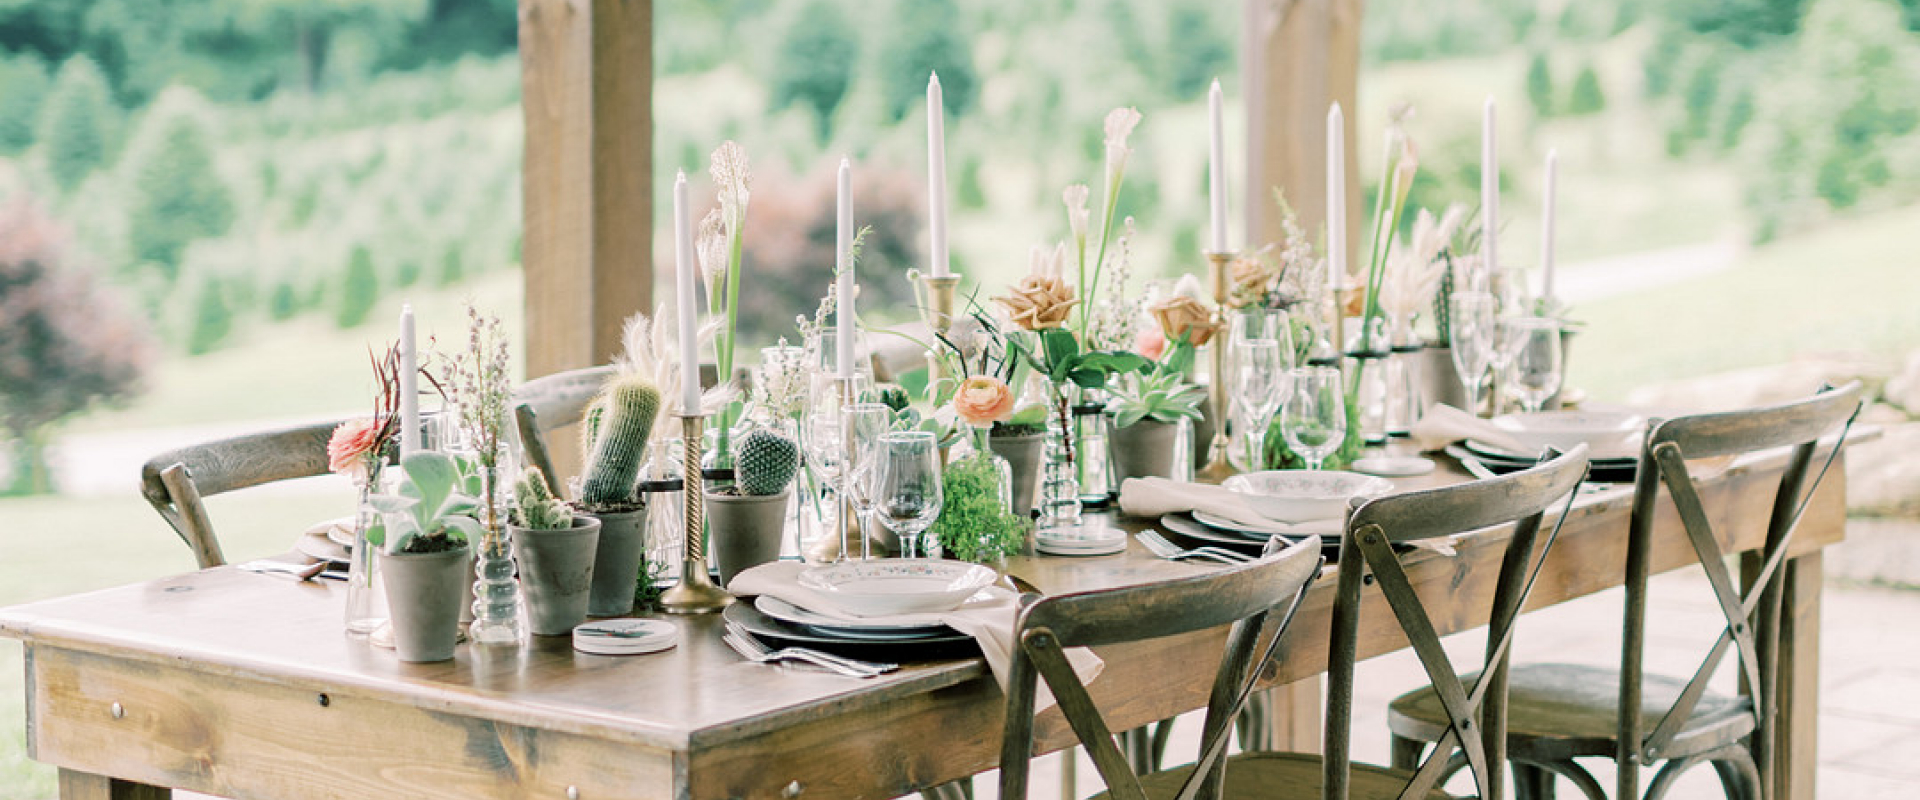 Cactus-Inspired Wedding Shoot in the Mountains